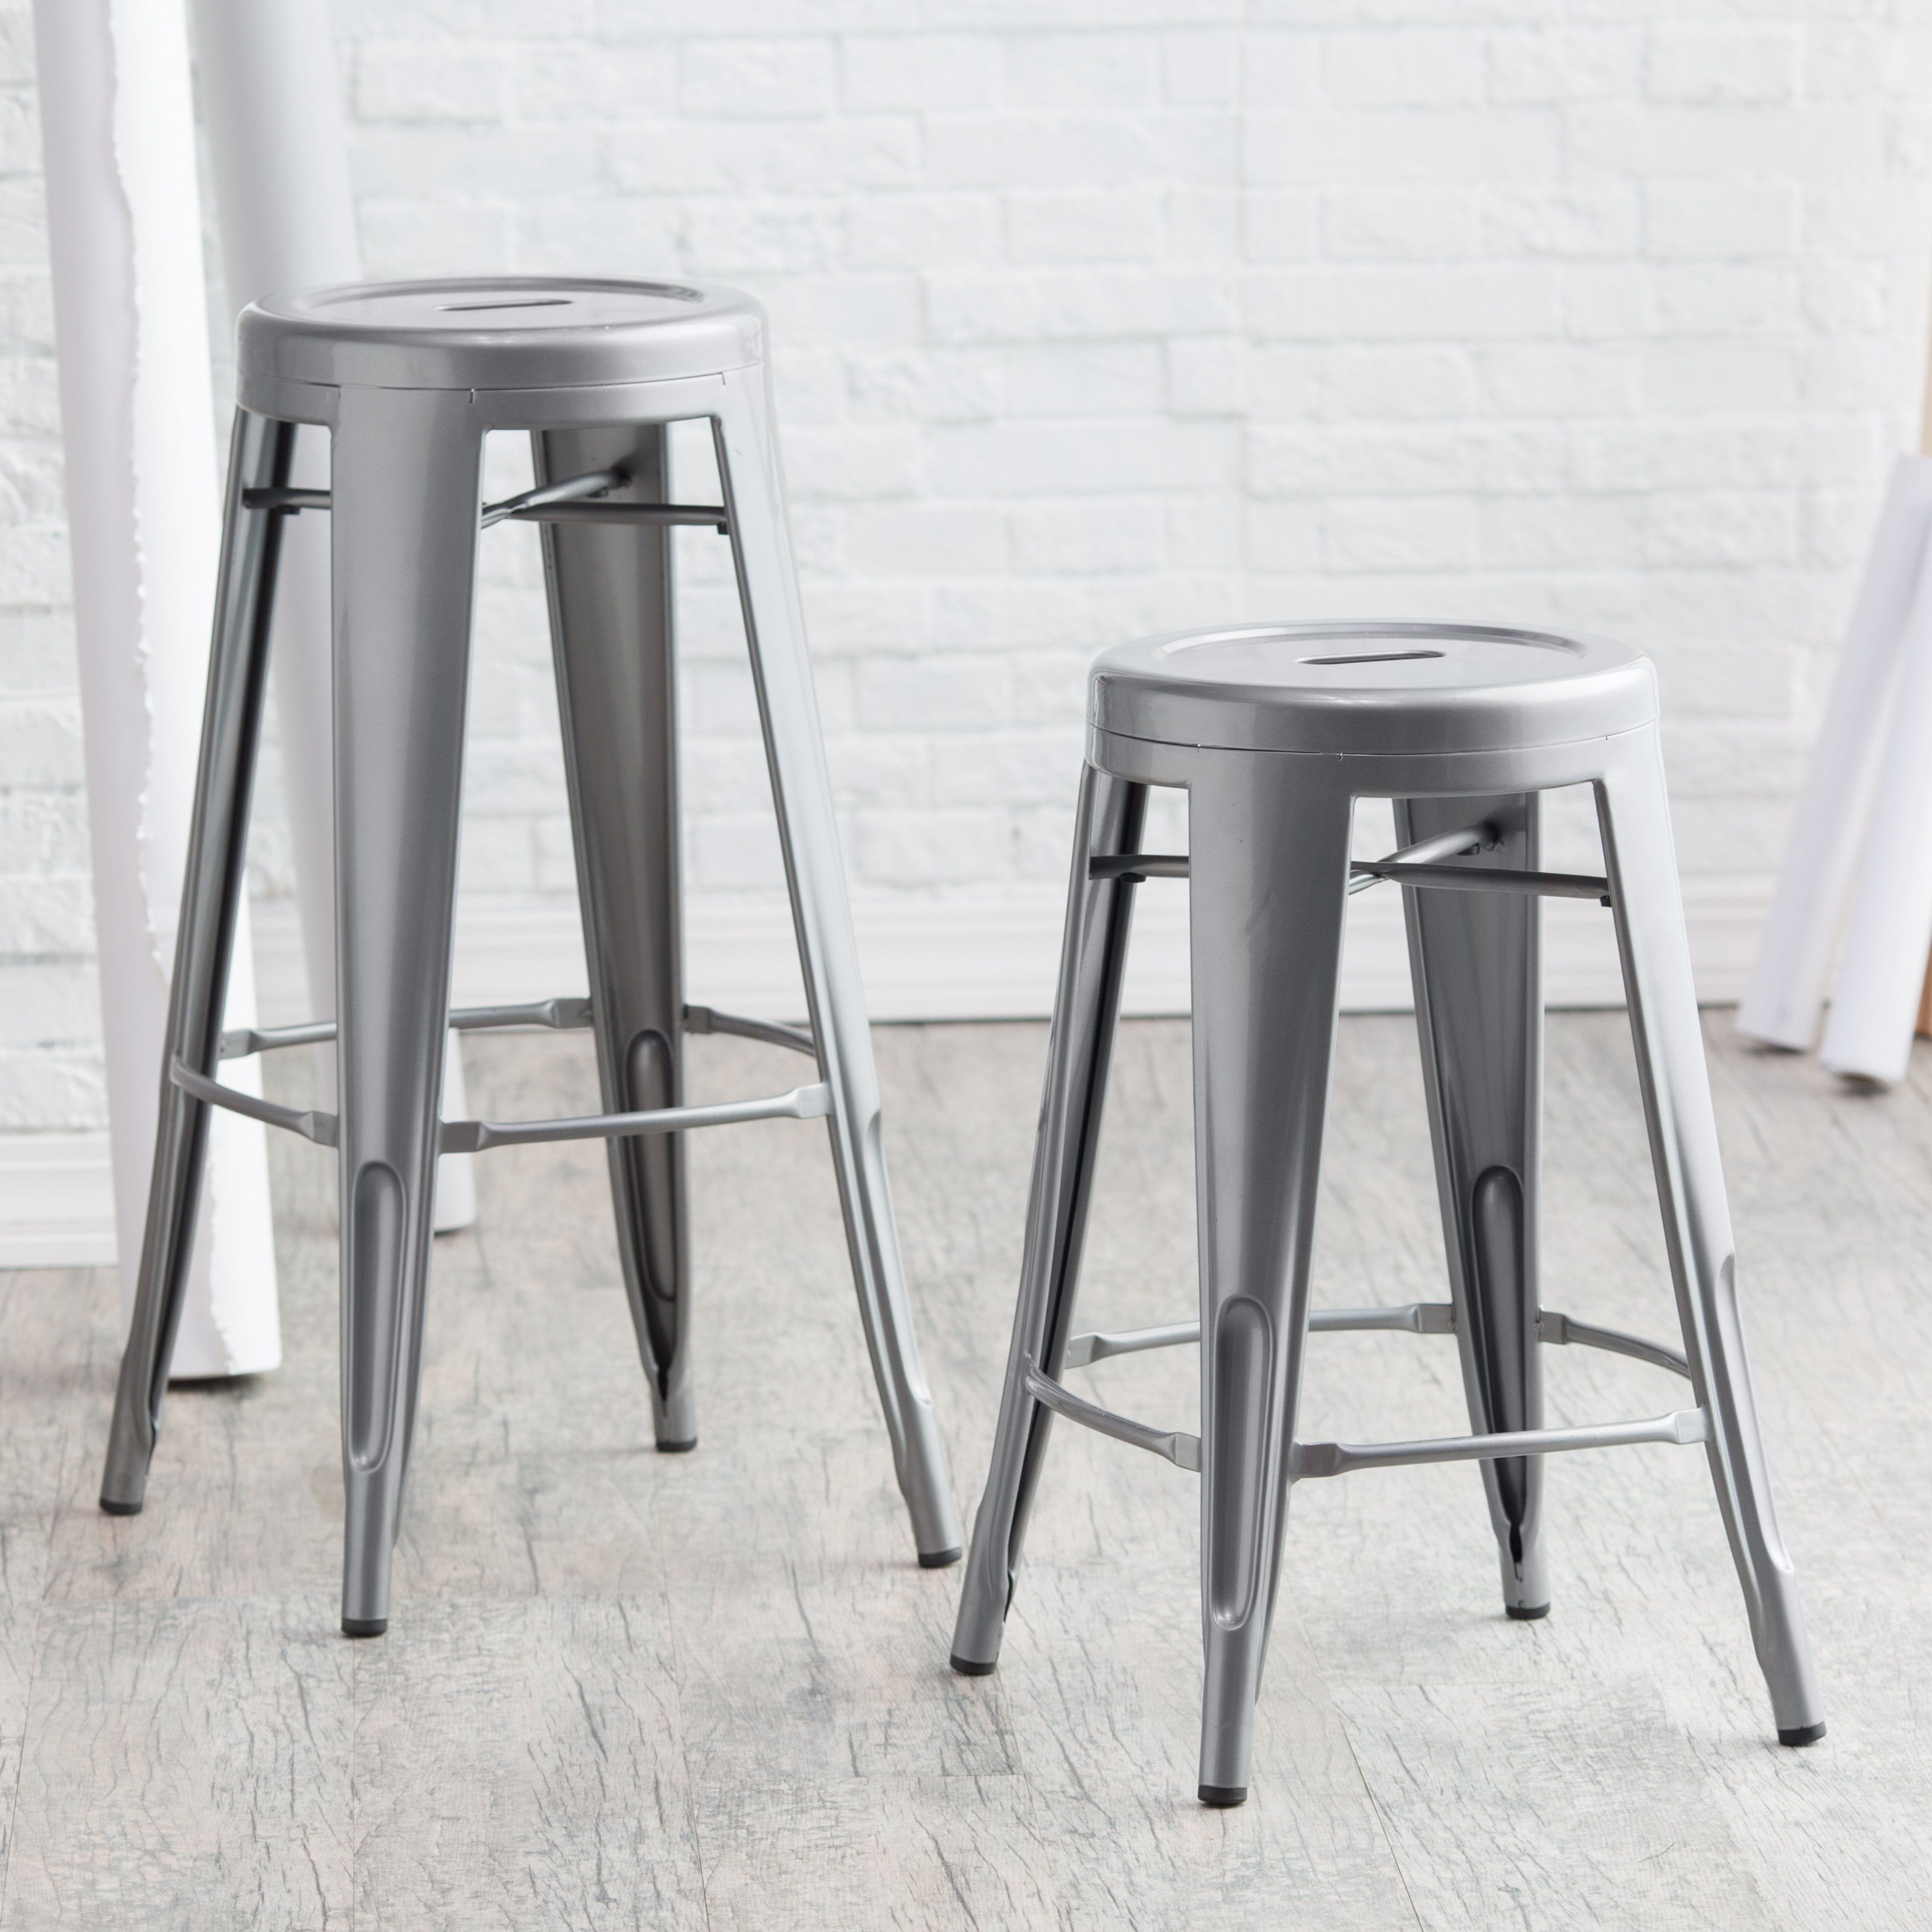 bar natural stool metal cqbooths d seat product commercial modern wood